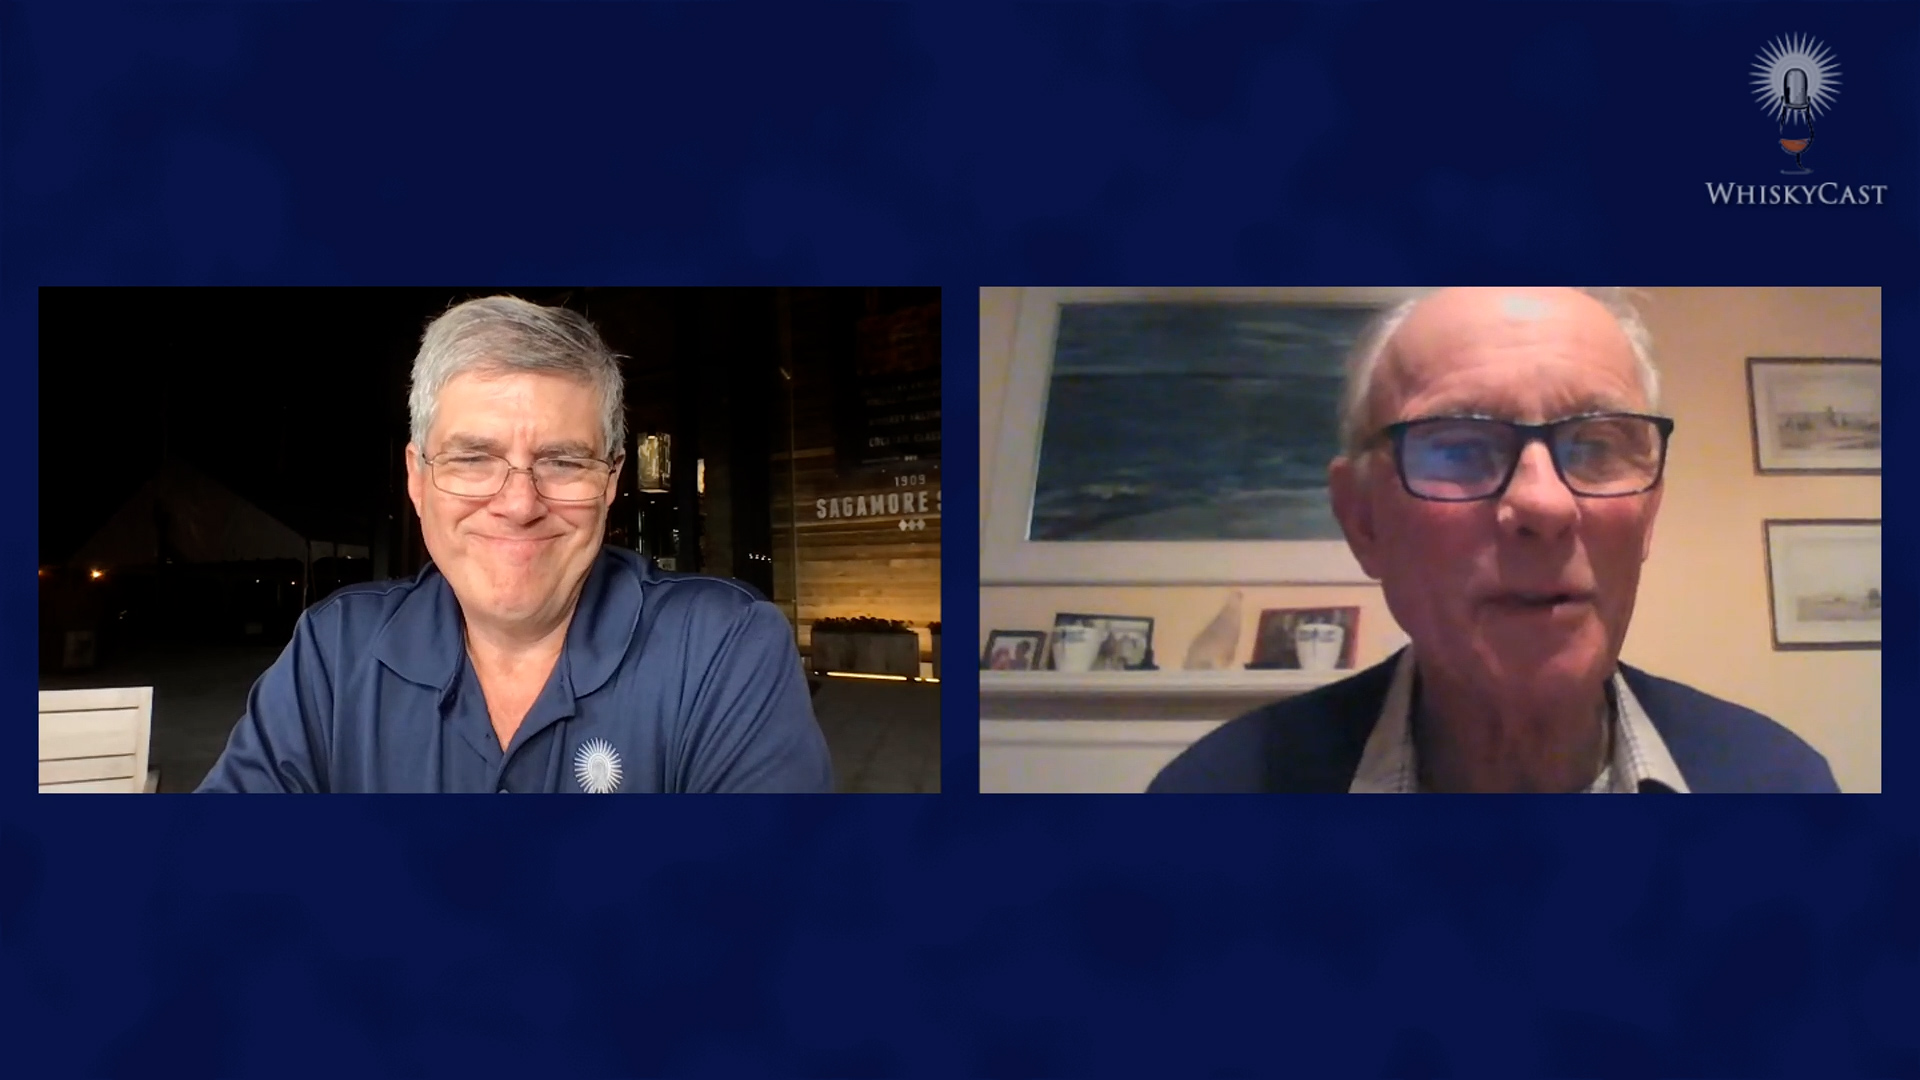 Colin Scott recently joined The Last Drop Distillers after a long career as master blender at Chivas Brothers, and he joined us on Friday night's #HappyHour webcast live on location at Sagamore Spirit Distillery in Baltimore.